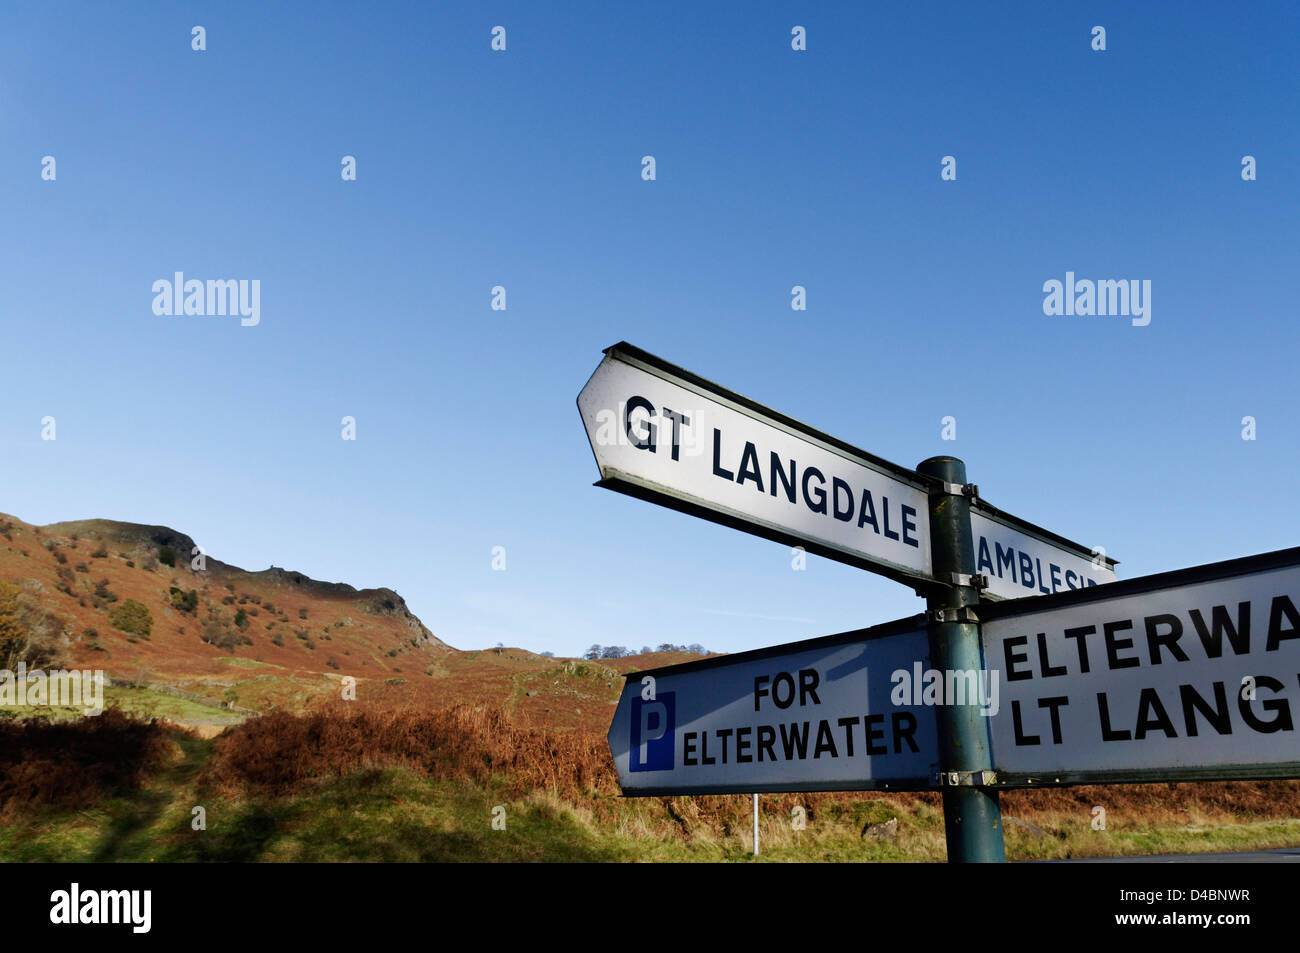 Road signs for Ambleside and Great Langdale in the Lake District - Stock Image